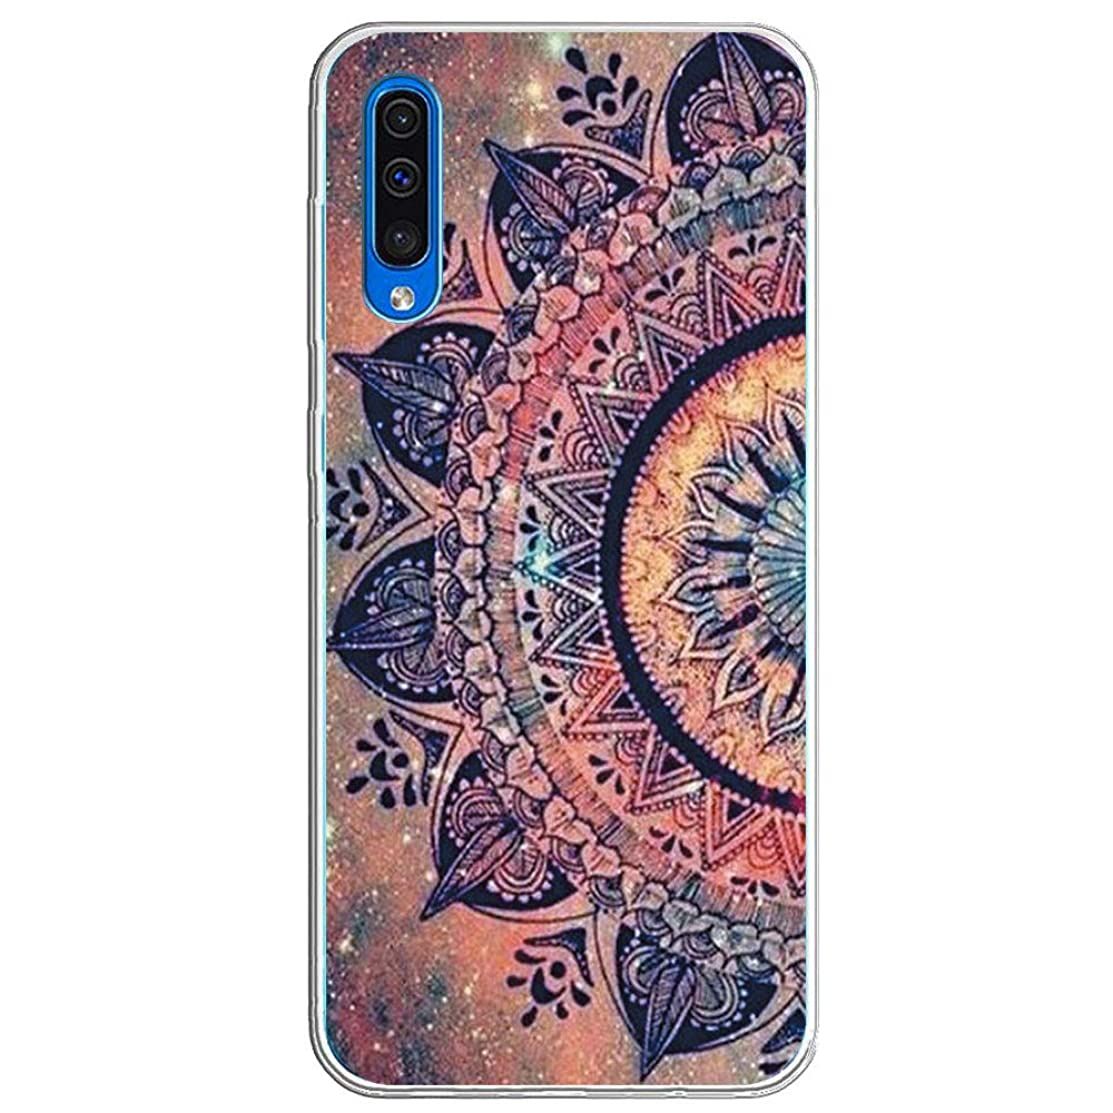 Case Compatible with Samsung Galaxy A40 Transparent TPU Flower Pattern Protective Cover for Galaxy A40 Mobile Phone